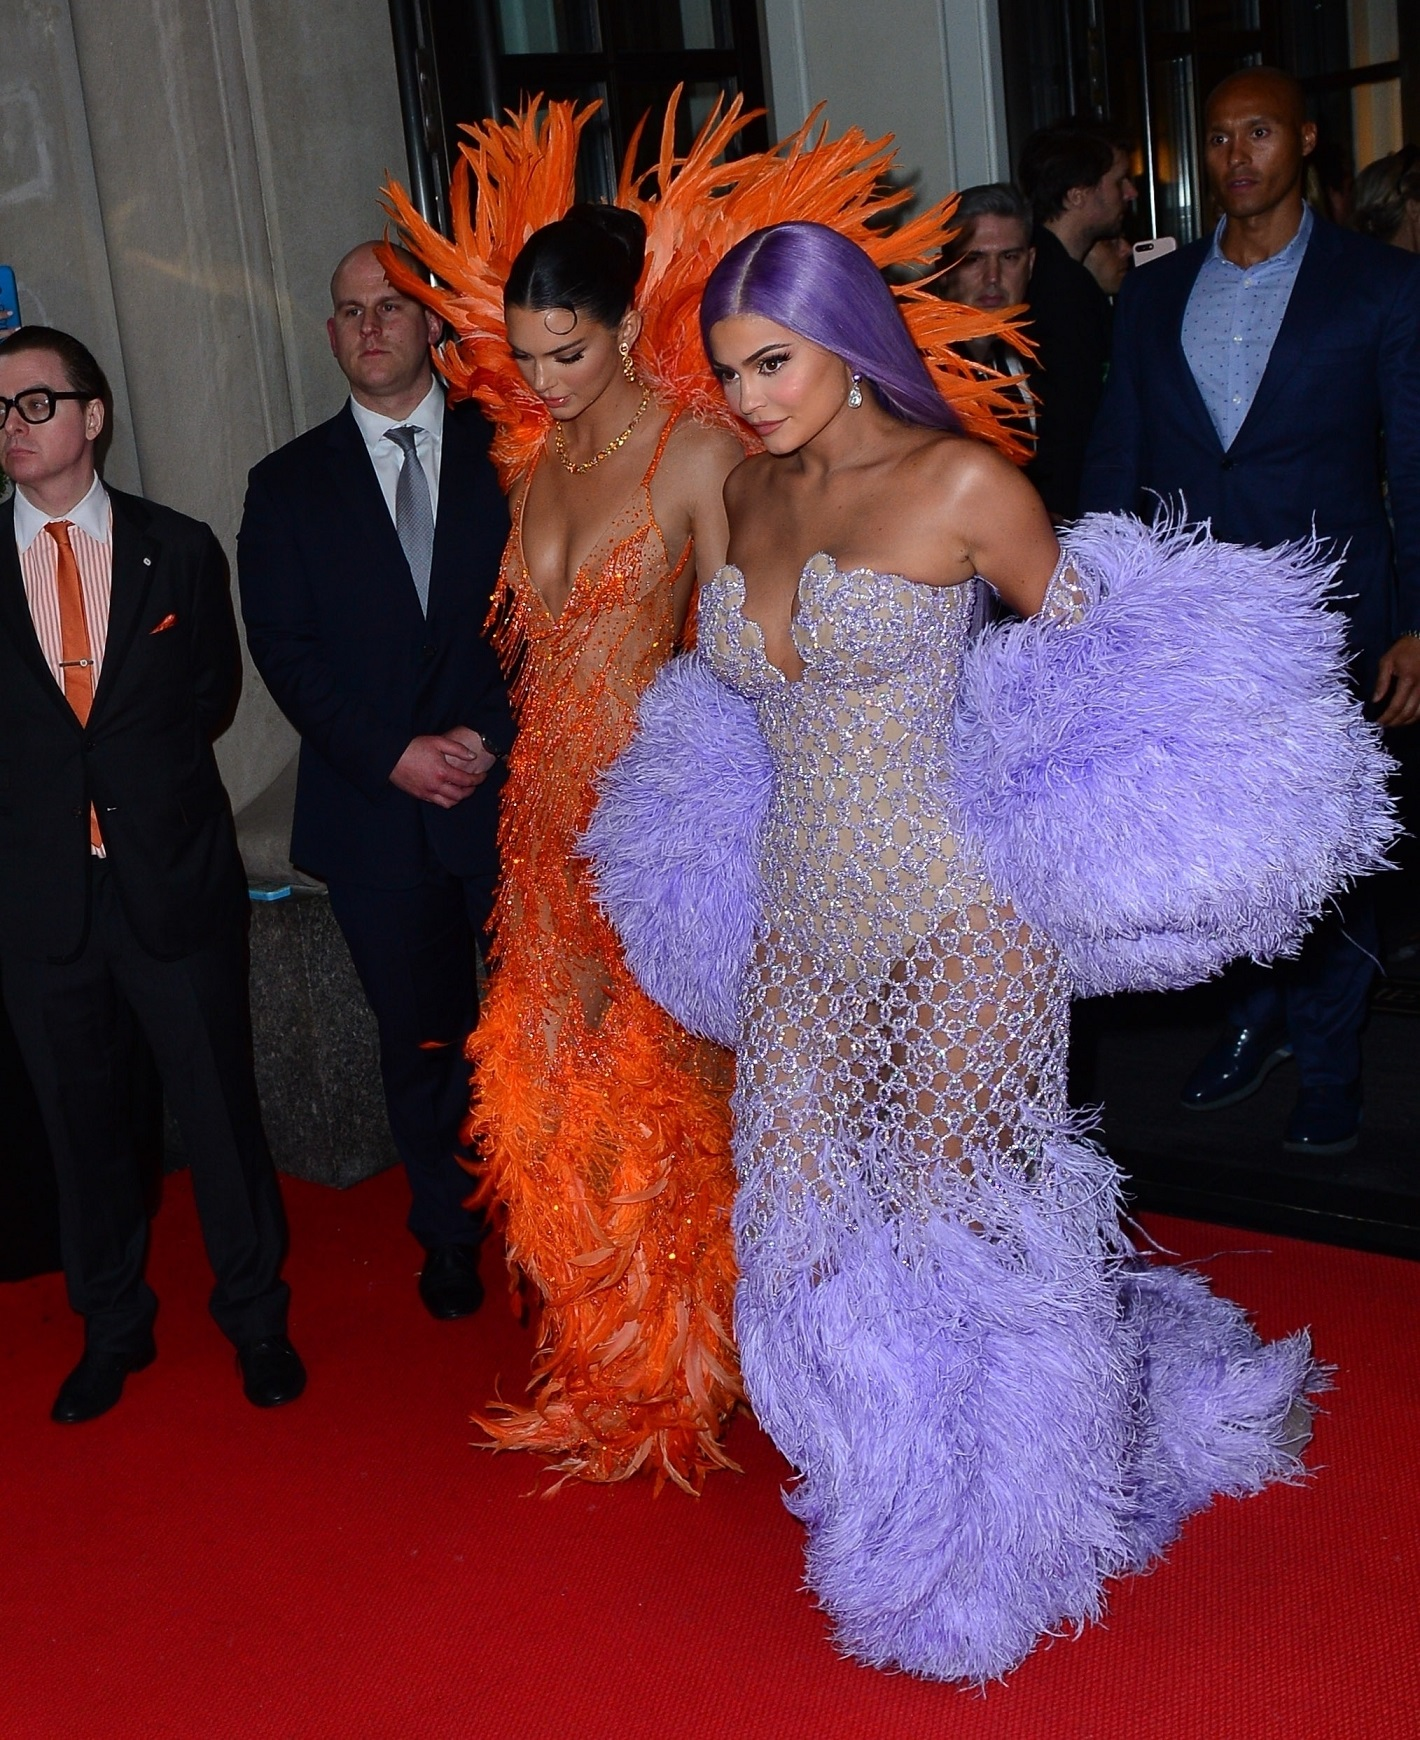 Kendall and Kylie Jenner step out in colorful fashion for the 2019 Met Gala Kendall Jenner, Kylie Jenner